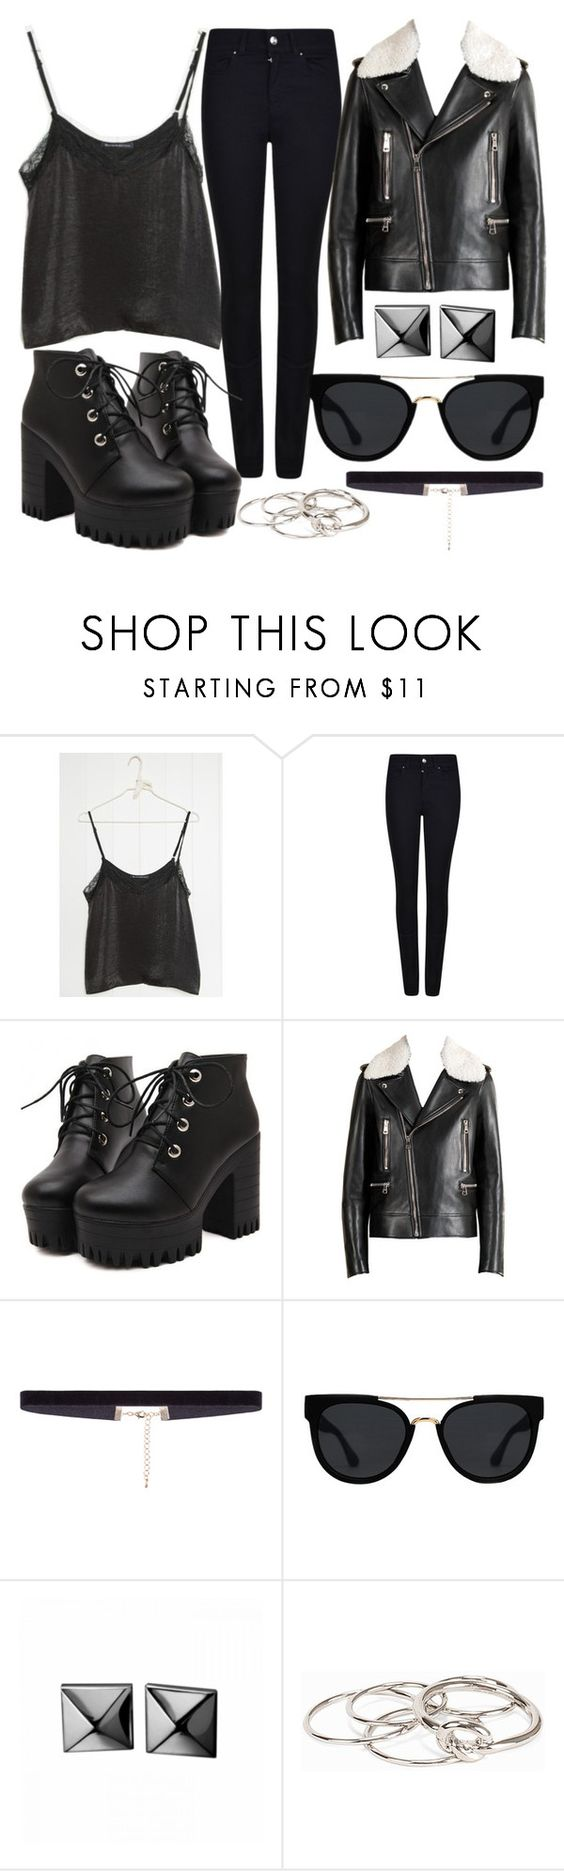 """Untitled #512"" by hellen-muniz ❤ liked on Polyvore featuring Charli, Armani Jeans, Gucci, Quay, Waterford and Pieces"